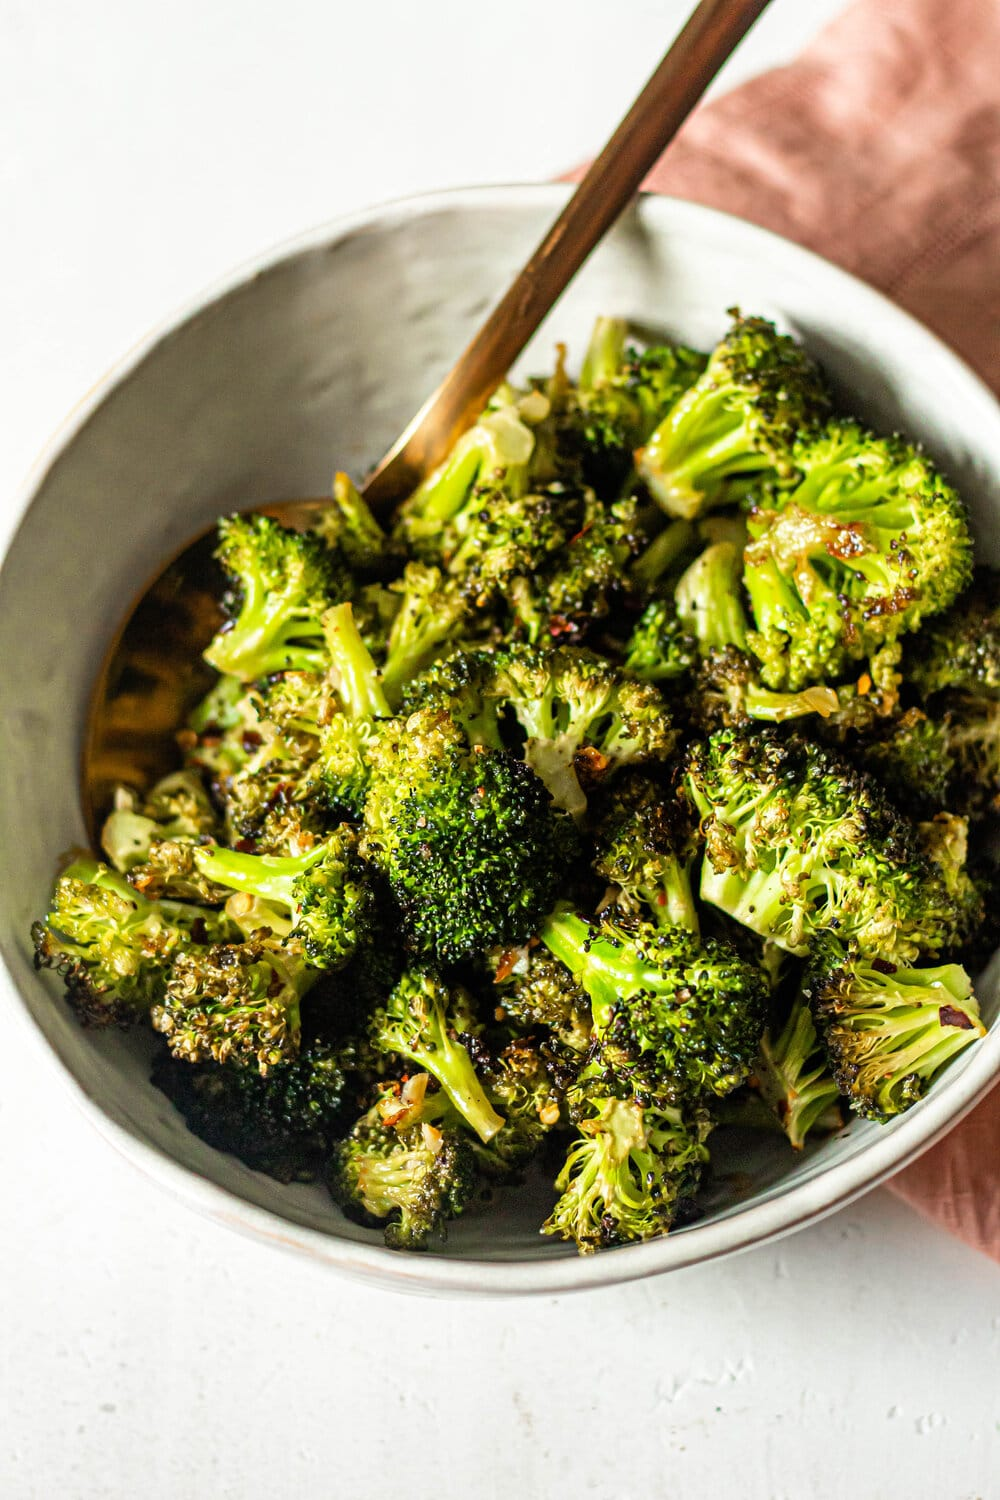 Roasted Garlic Lemon Broccoli in white bowl with gold spoon